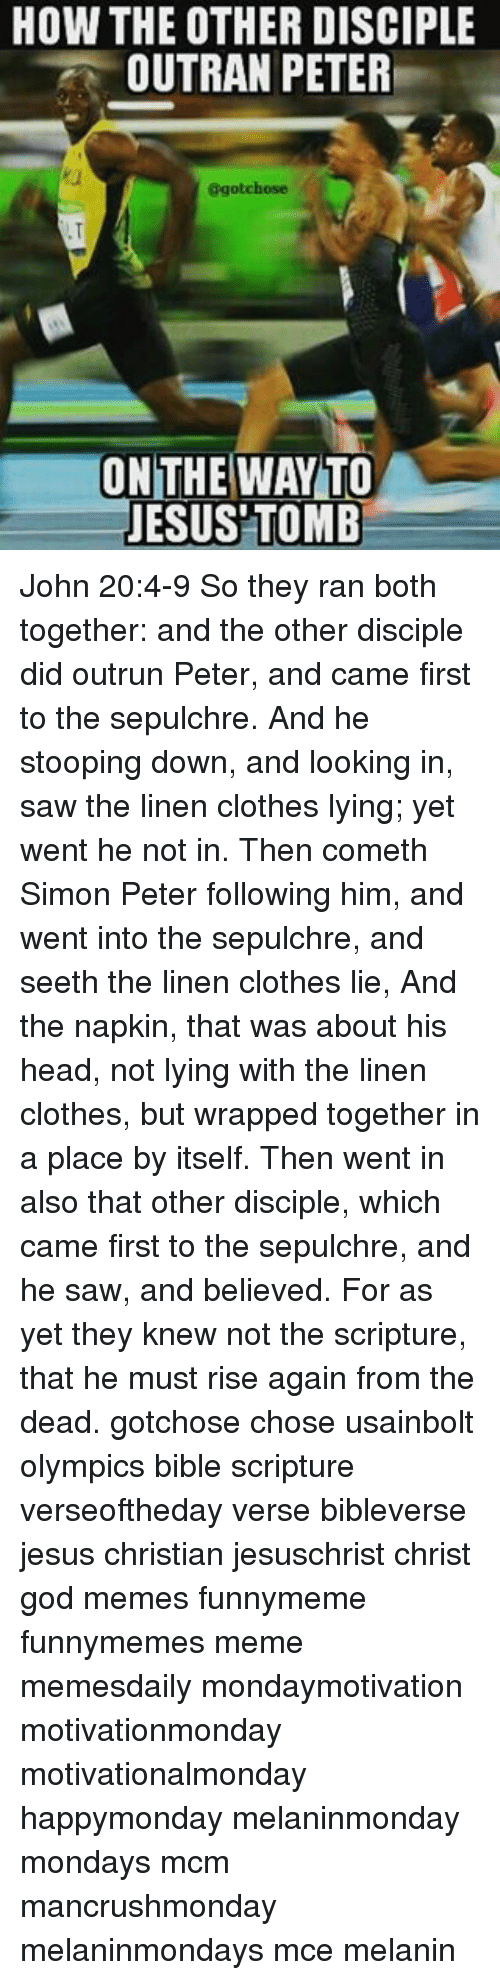 Clothes, God, and Head: HOW THE OTHER DISCIPLE  OUTRAN PETER  ggotchose  ON THE WAY TO  JESUS TOMB John 20:4-9 So they ran both together: and the other disciple did outrun Peter, and came first to the sepulchre. And he stooping down, and looking in, saw the linen clothes lying; yet went he not in. Then cometh Simon Peter following him, and went into the sepulchre, and seeth the linen clothes lie, And the napkin, that was about his head, not lying with the linen clothes, but wrapped together in a place by itself. Then went in also that other disciple, which came first to the sepulchre, and he saw, and believed. For as yet they knew not the scripture, that he must rise again from the dead. gotchose chose usainbolt olympics bible scripture verseoftheday verse bibleverse jesus christian jesuschrist christ god memes funnymeme funnymemes meme memesdaily mondaymotivation motivationmonday motivationalmonday happymonday melaninmonday mondays mcm mancrushmonday melaninmondays mce melanin